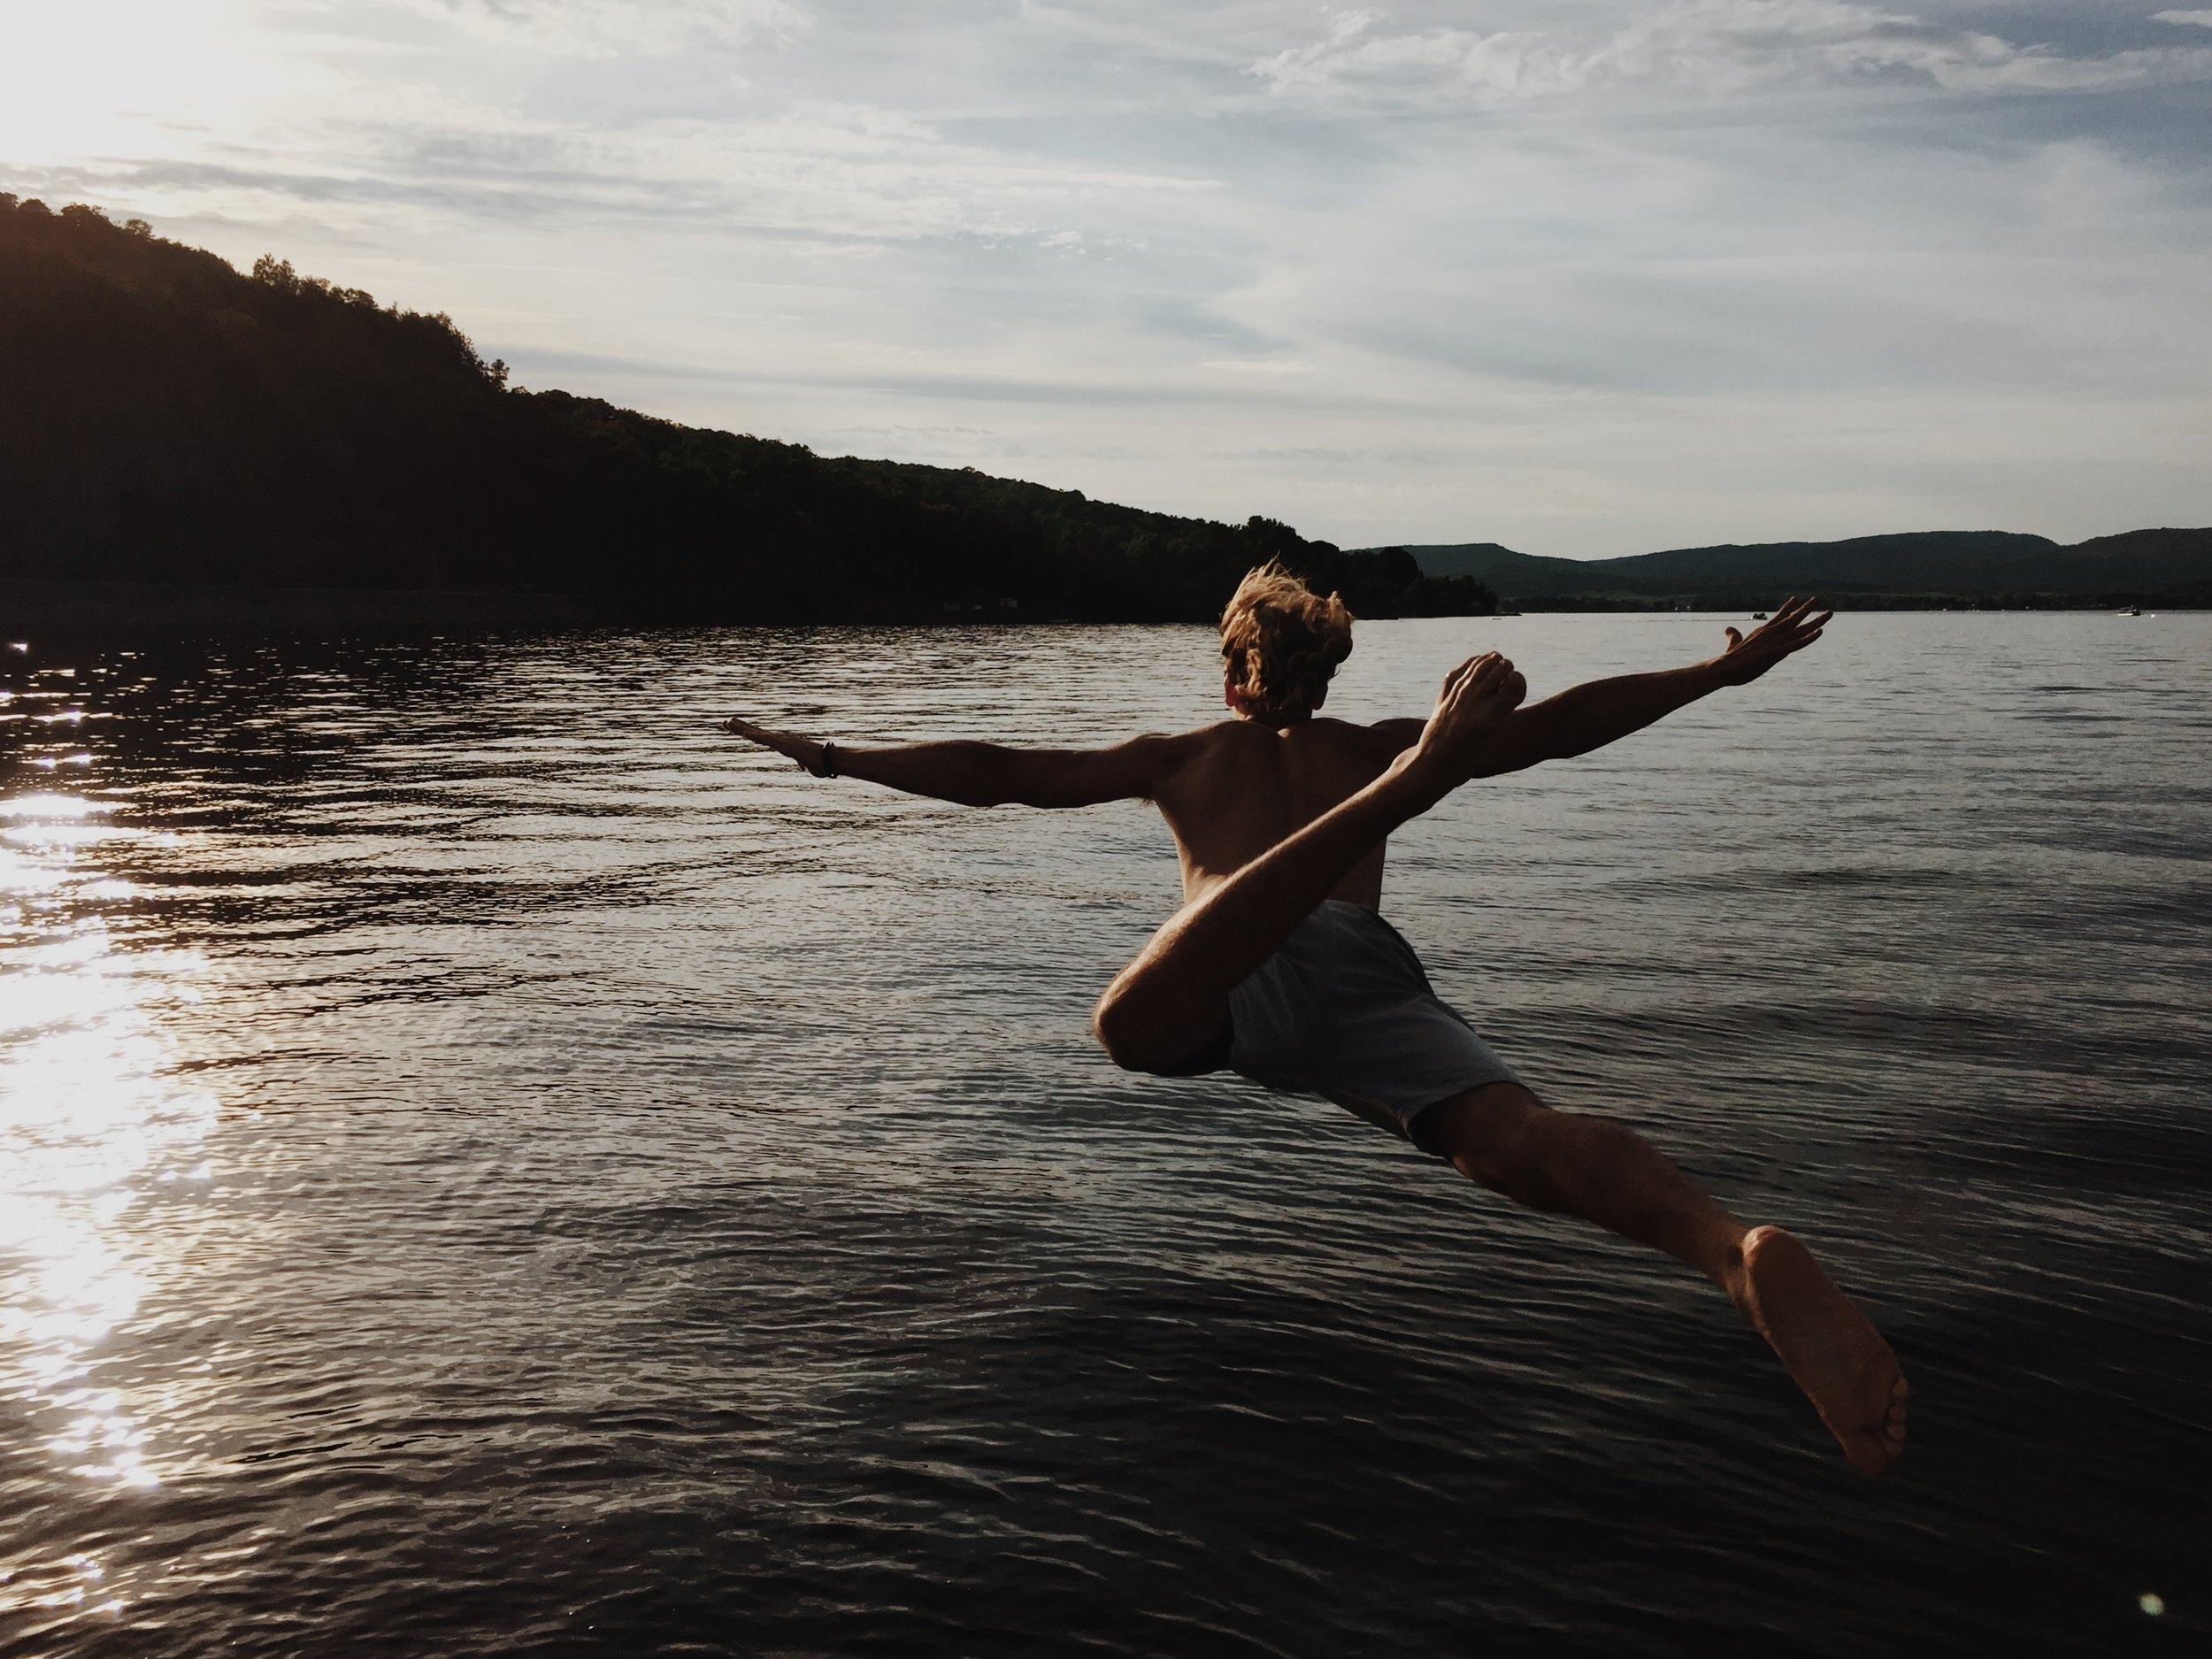 man in bathing suit jumping into lake with arms stretched out like an airplane